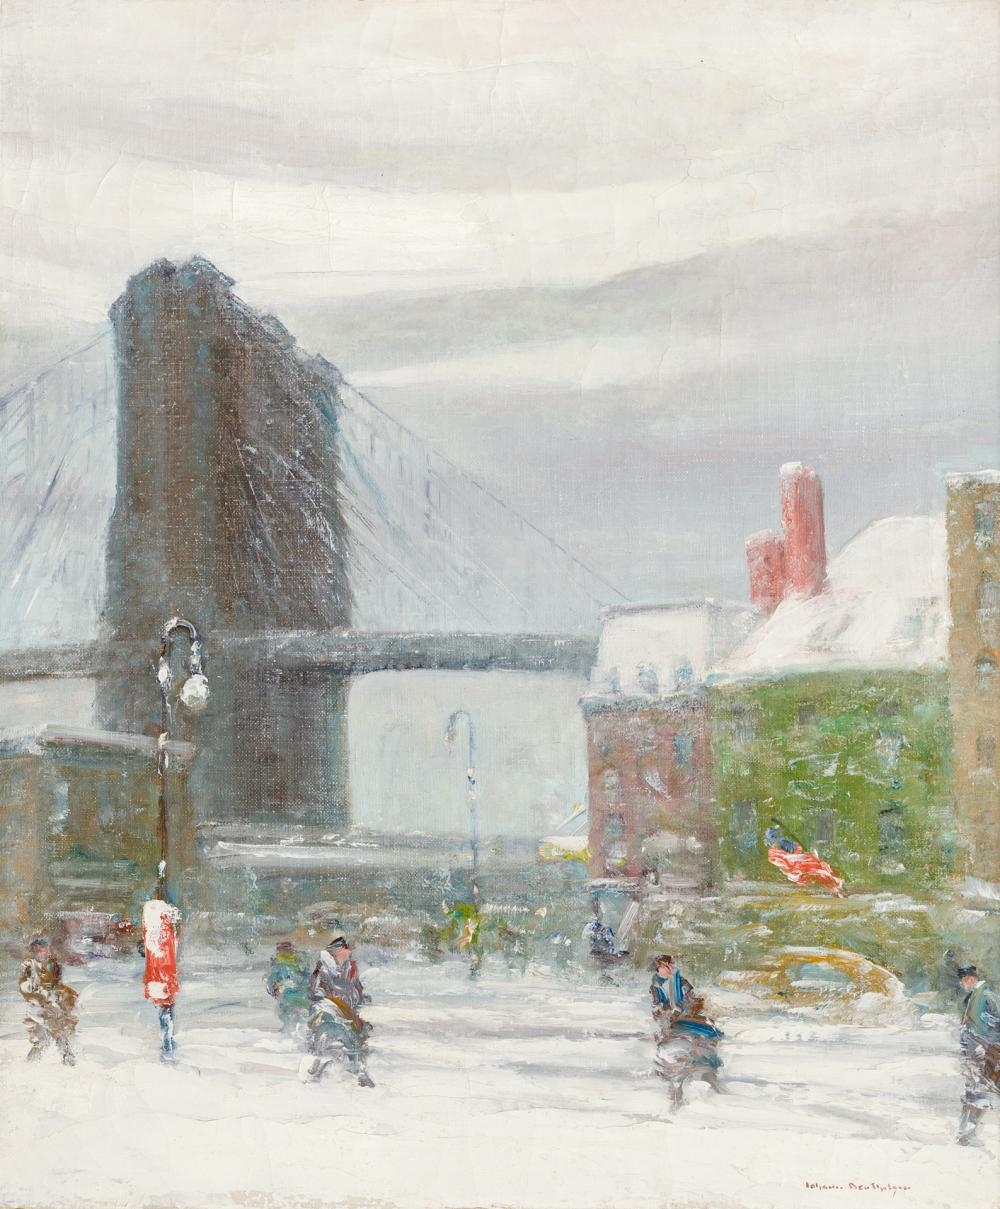 "JOHANN BERTHELSEN, American (1883-1972), ""Brooklyn Bridge"", oil on canvas, signed lower right ""Johann Berthelsen"", 24 x 20 1/4 inche..."